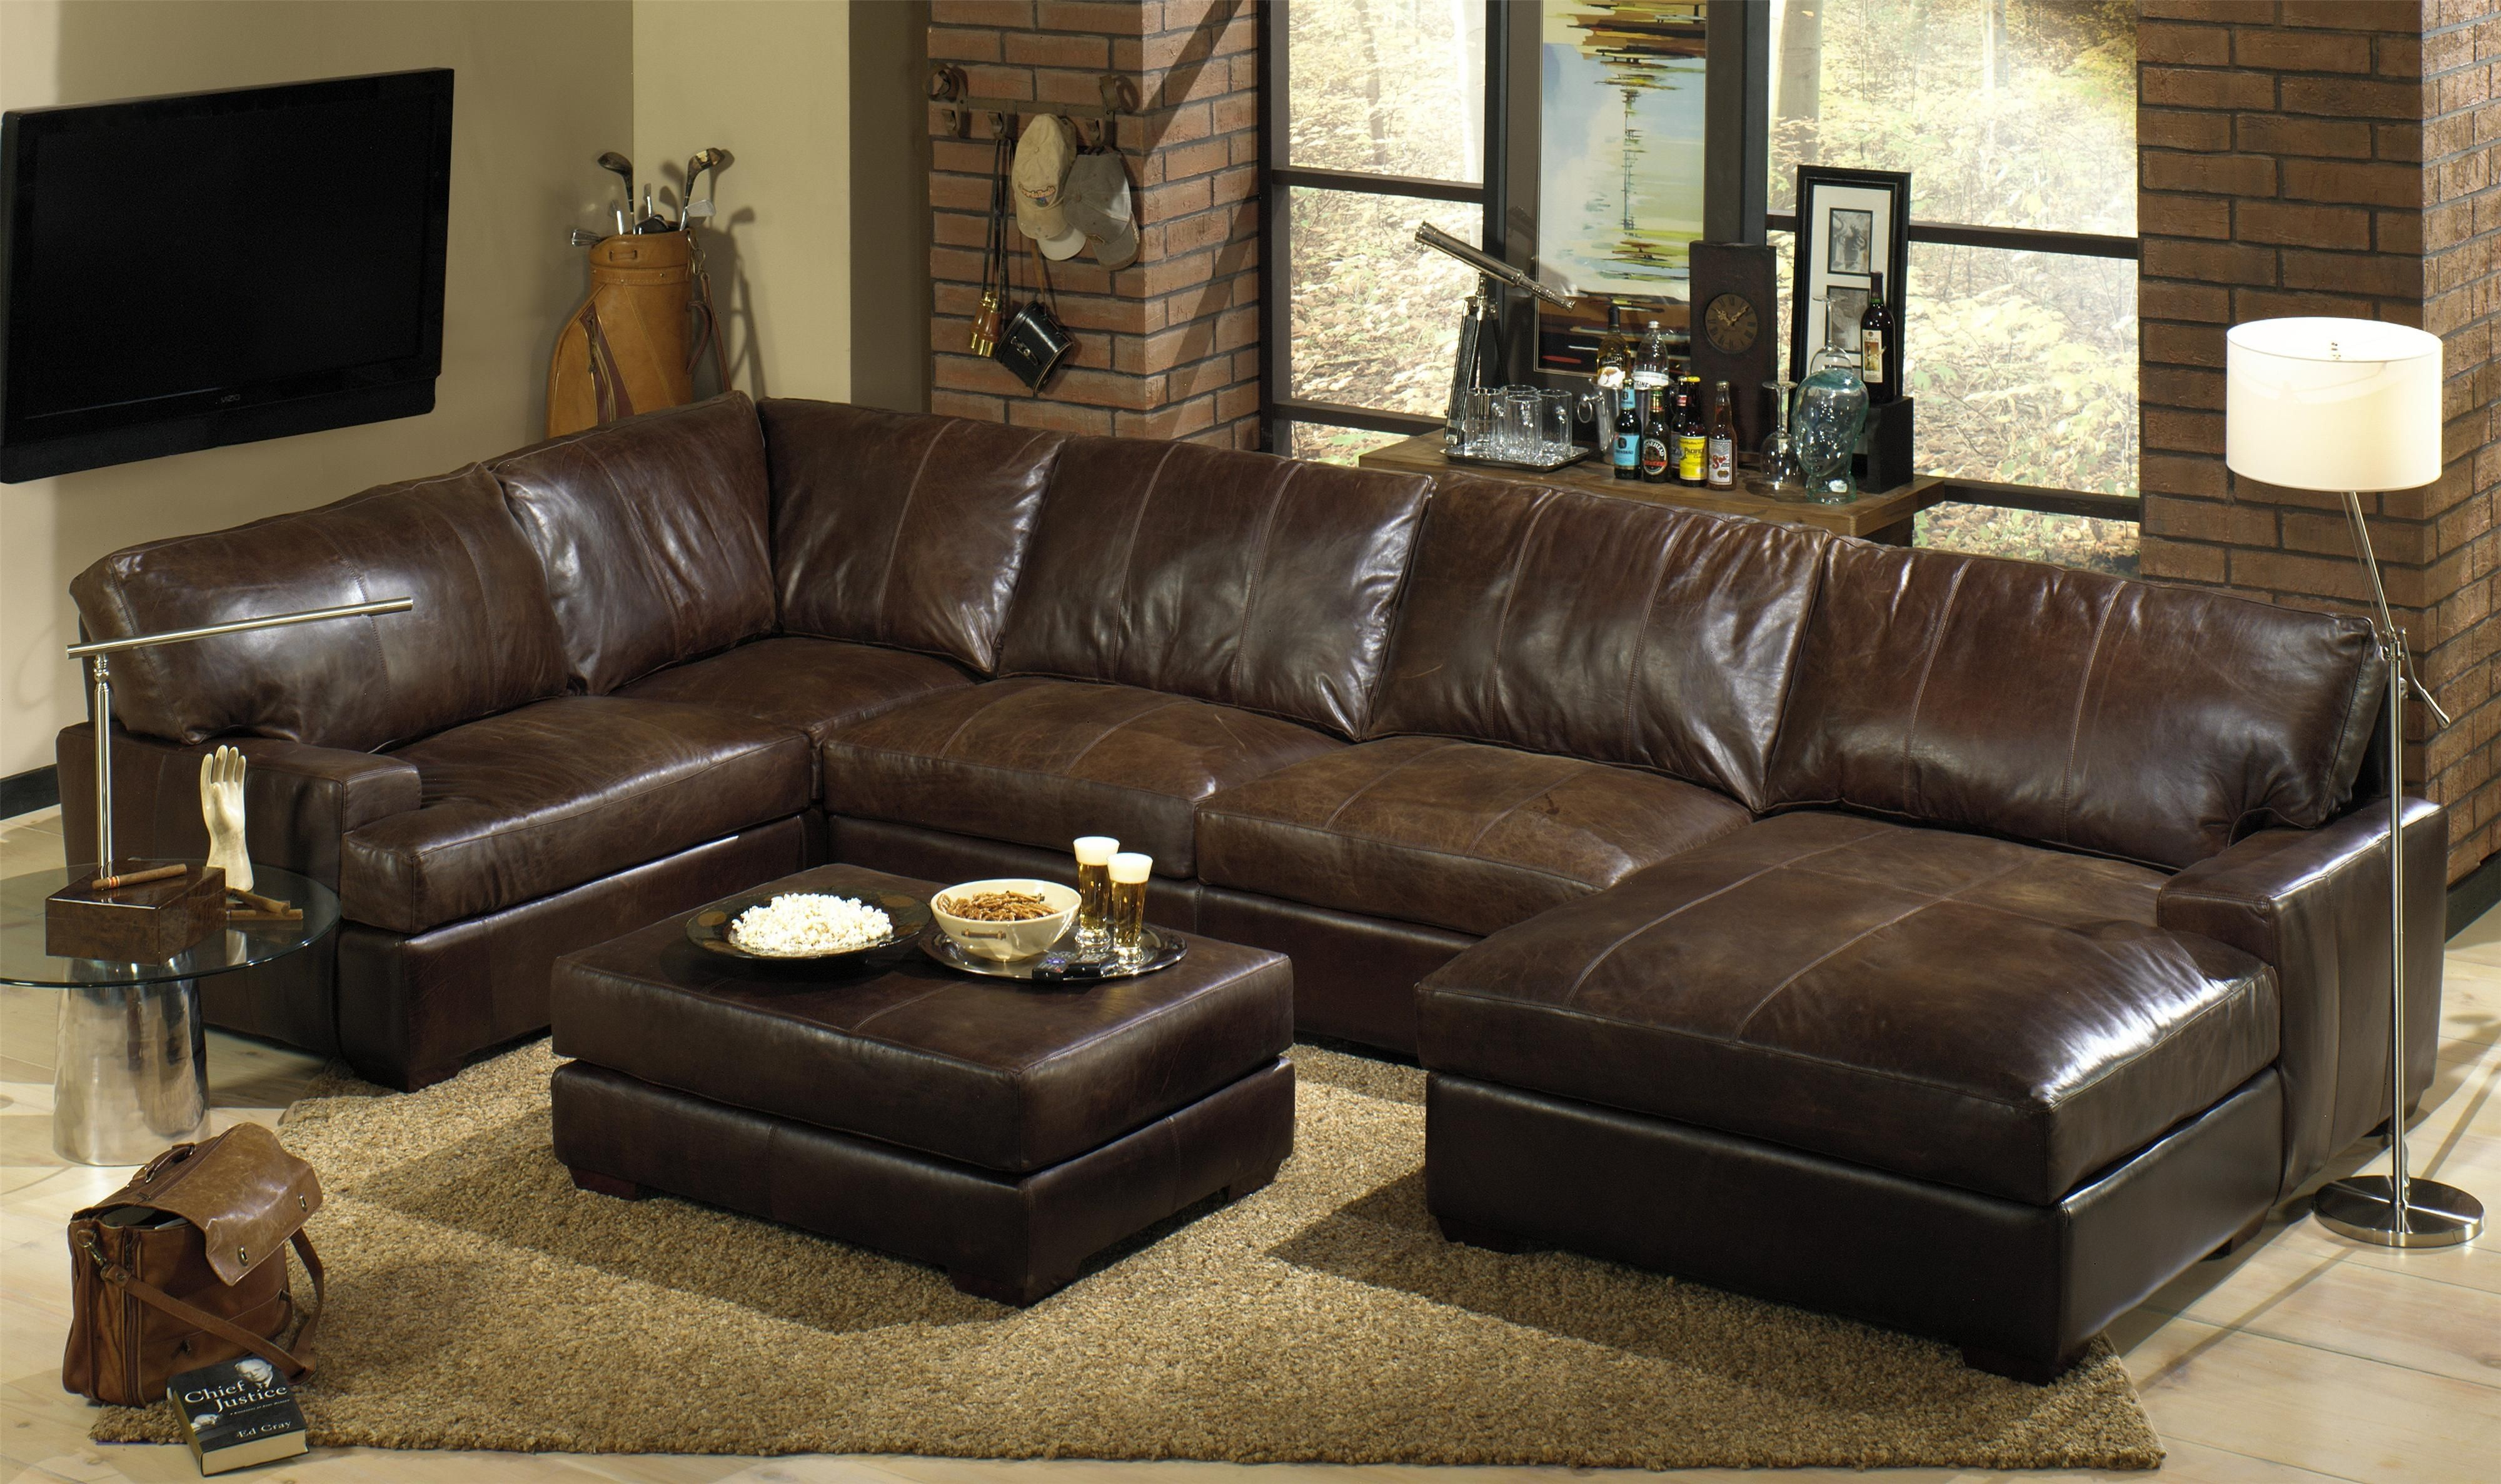 Most Comfortable Leather Sectional Sofa Sectional Sofa With Chaise Leather Sectional Sofas Leather Living Room Furniture